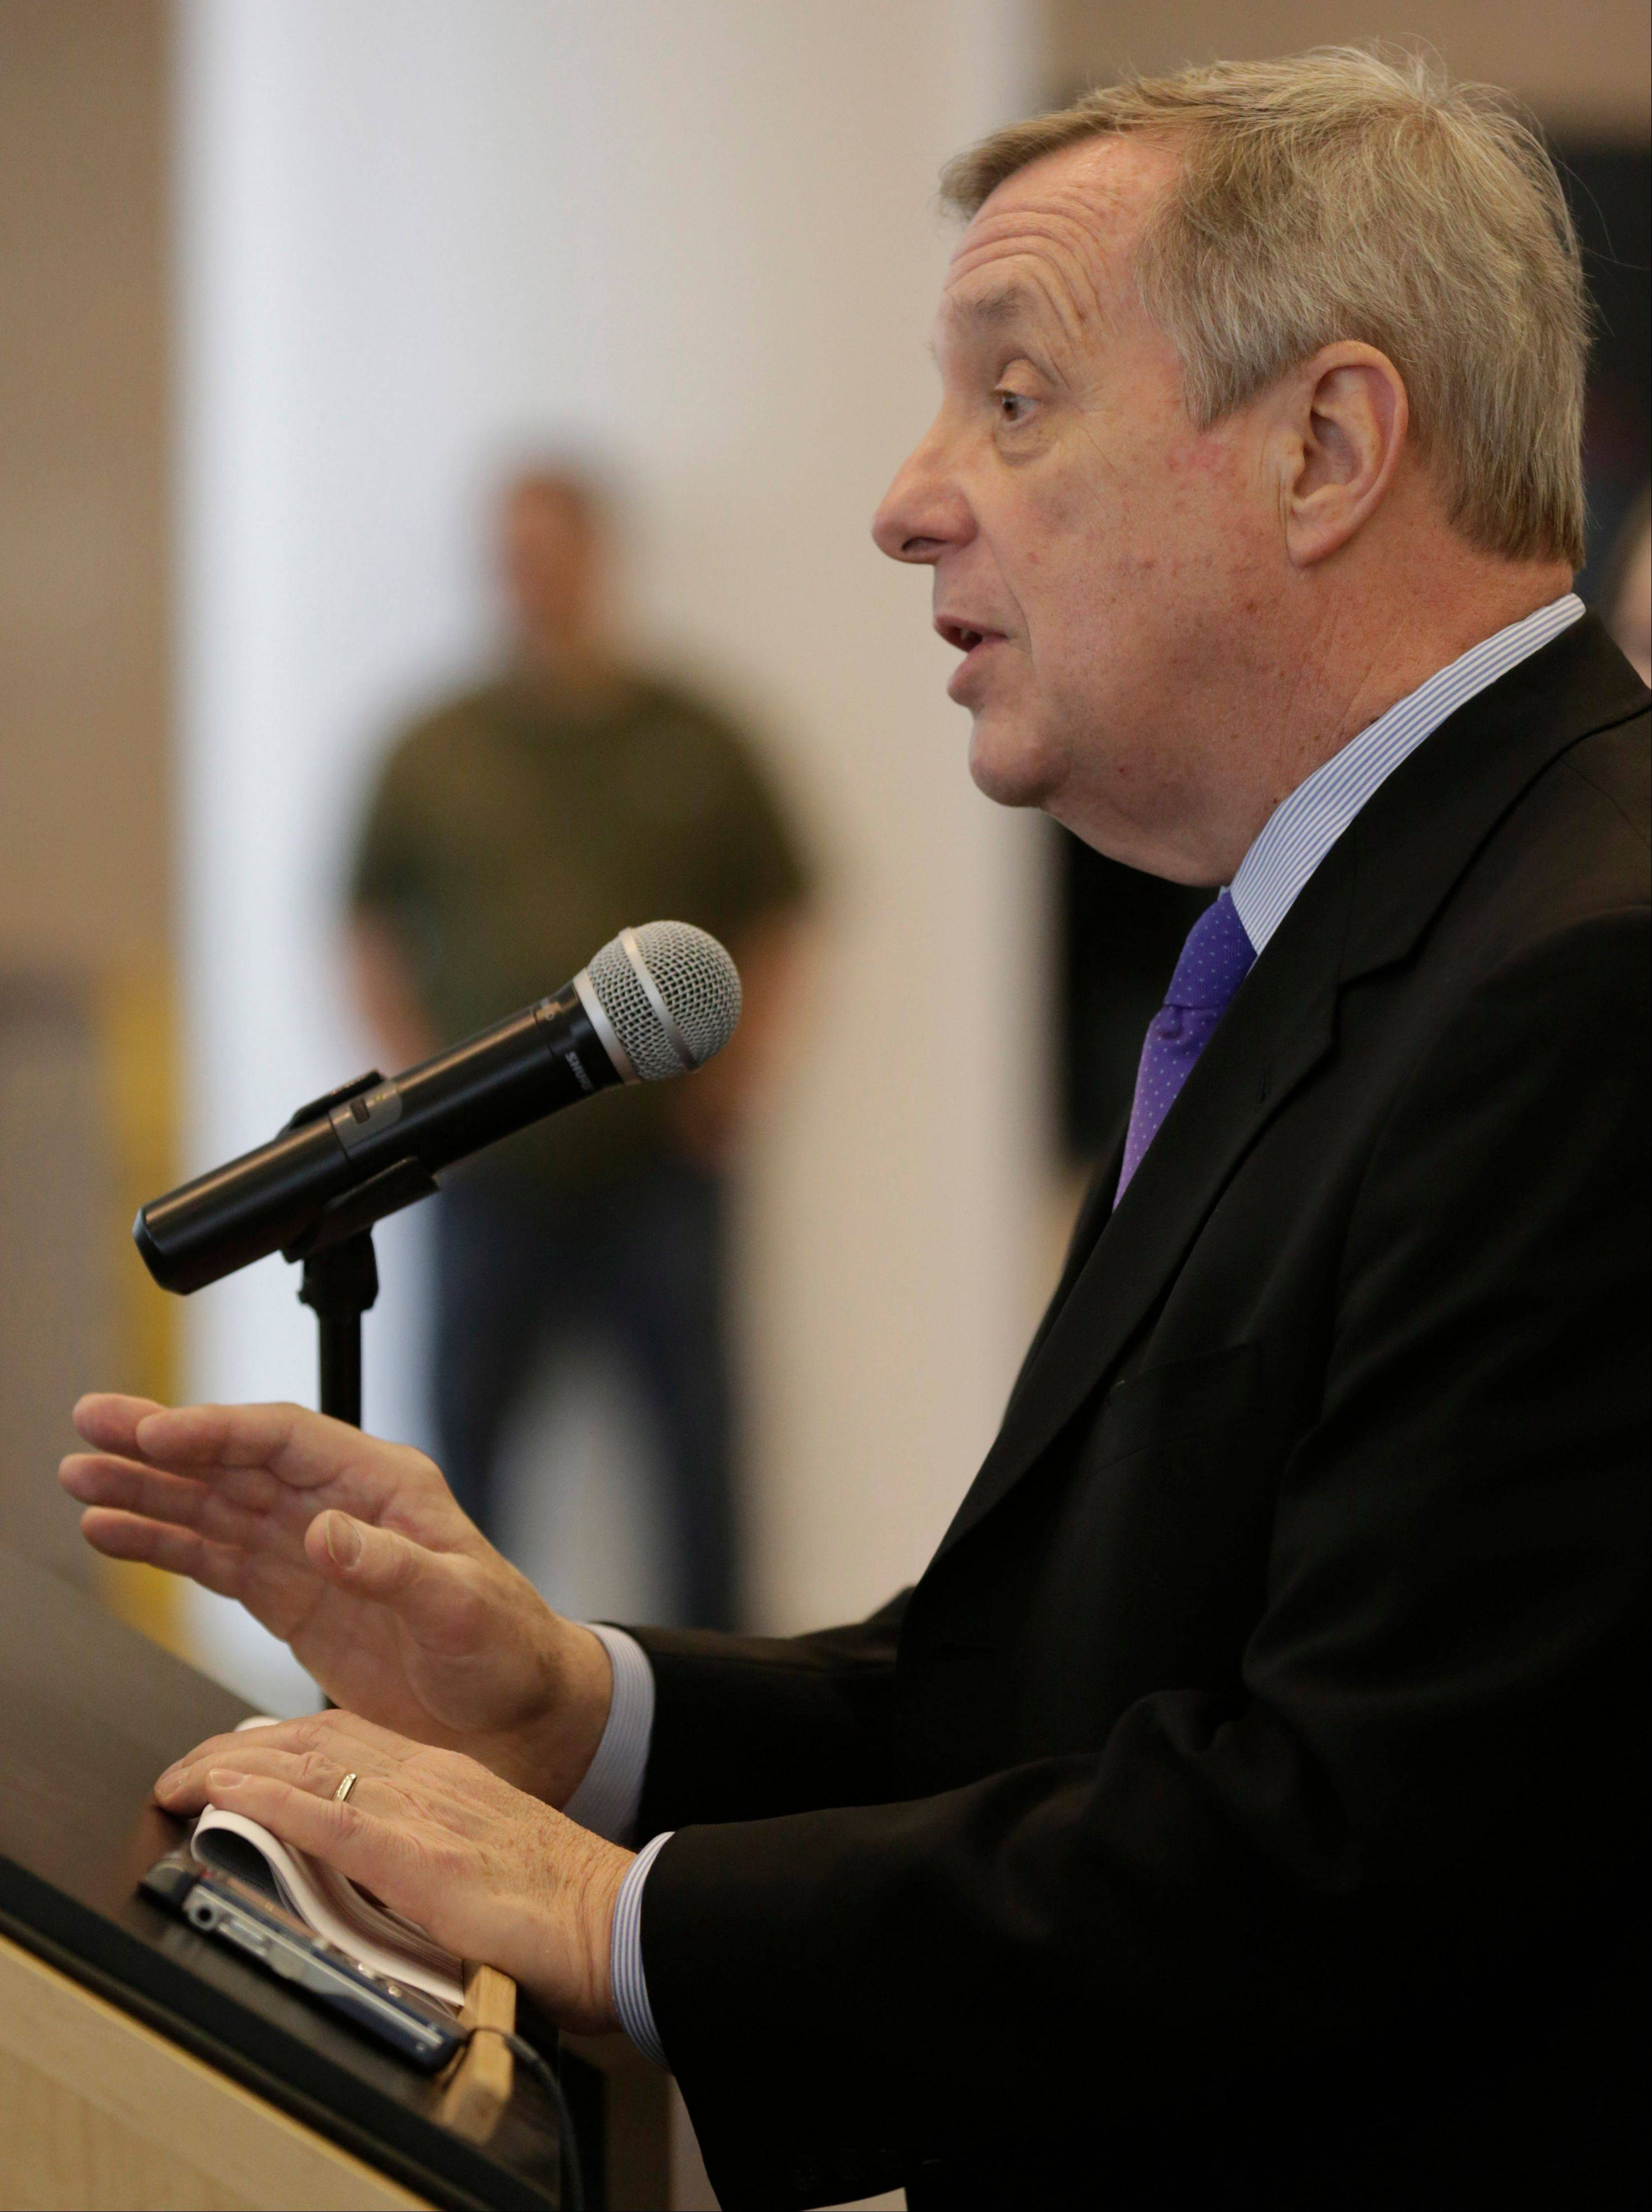 Immigration legislation would enhance U.S. security, Durbin says